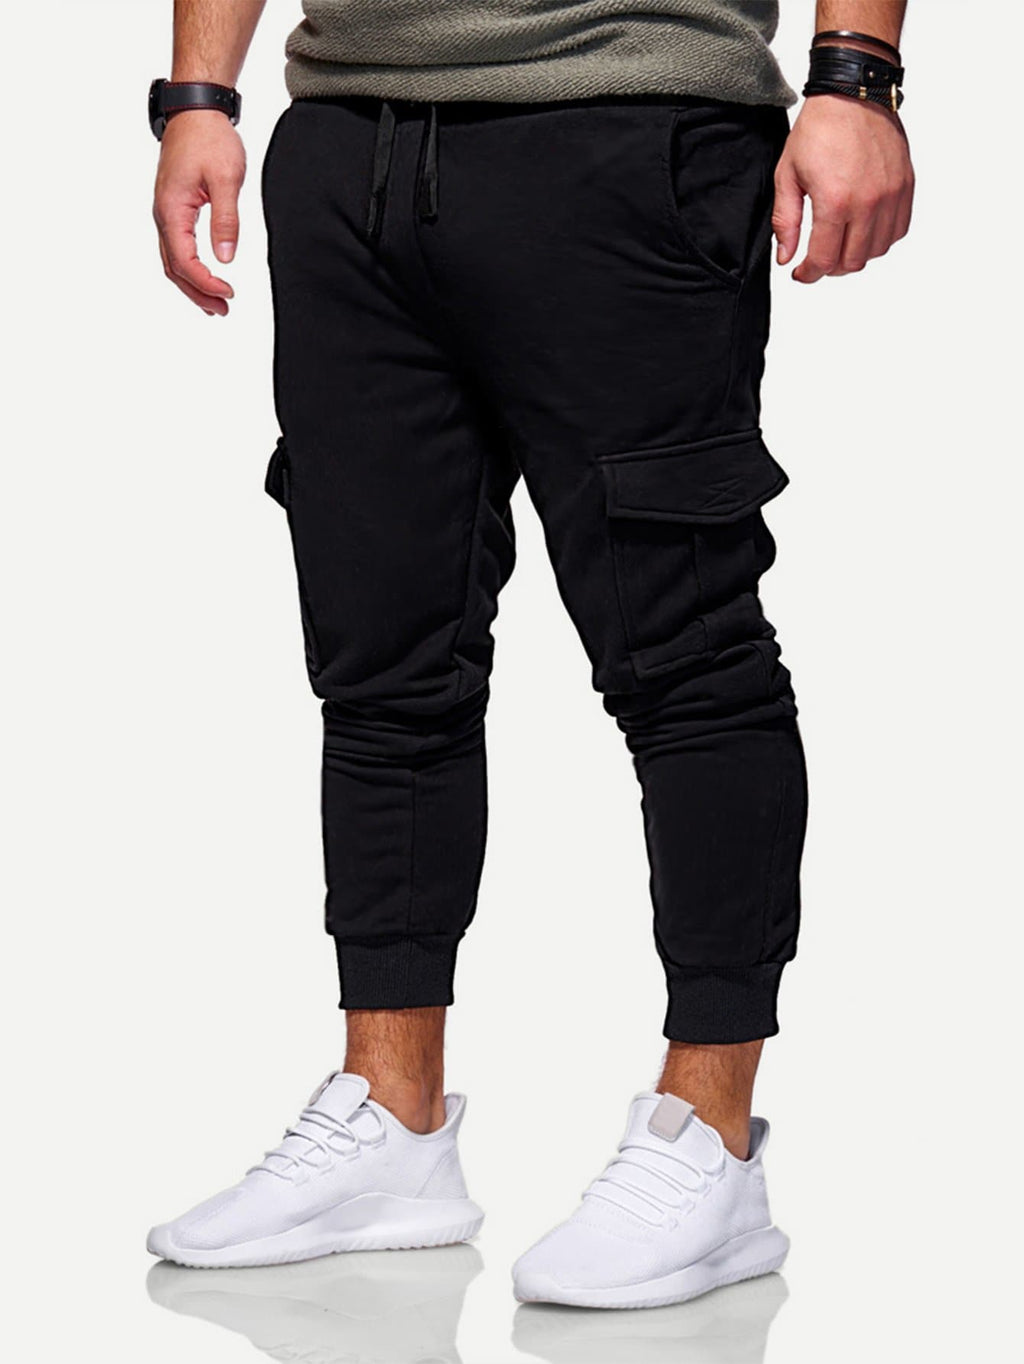 Men's Activewear - Solid Pockets Decoration Drawstring Joggers